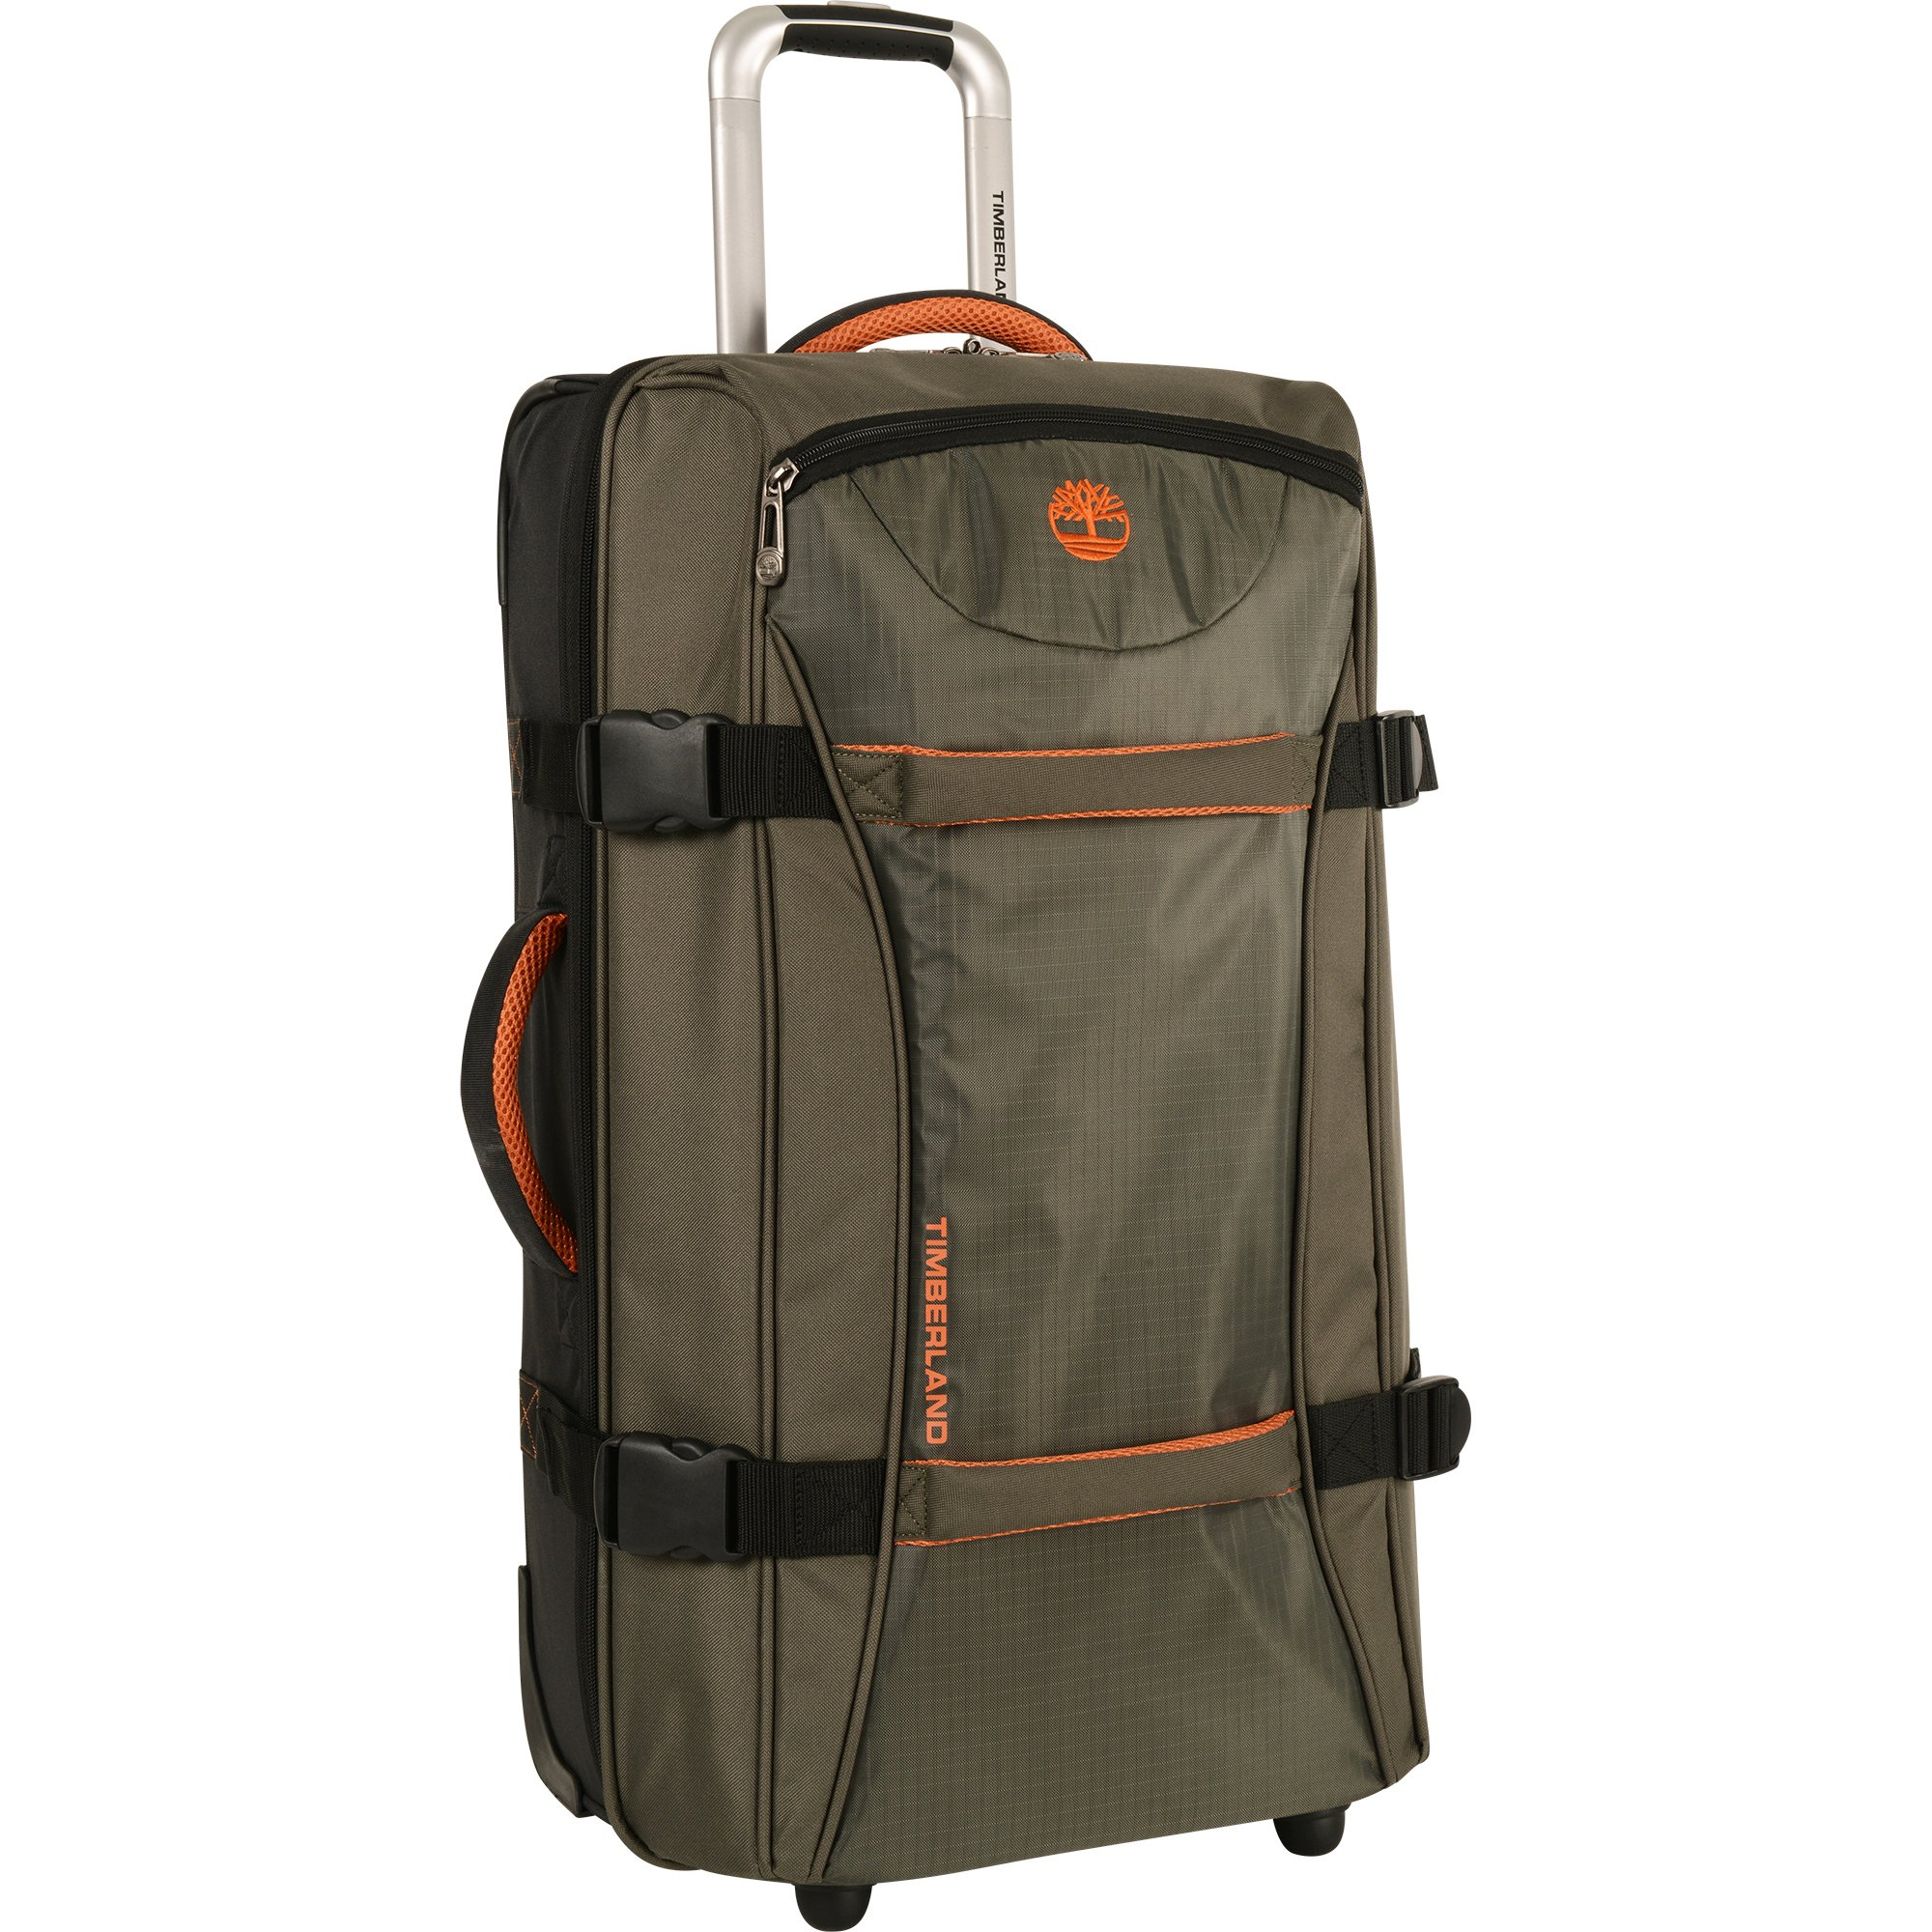 Timberland Wheeled Duffle Bag - 30 Inch Lightweight Large Rolling Luggage Travel Bag Suitcase for Men, Burnt Olive/Burnt Orange by Timberland